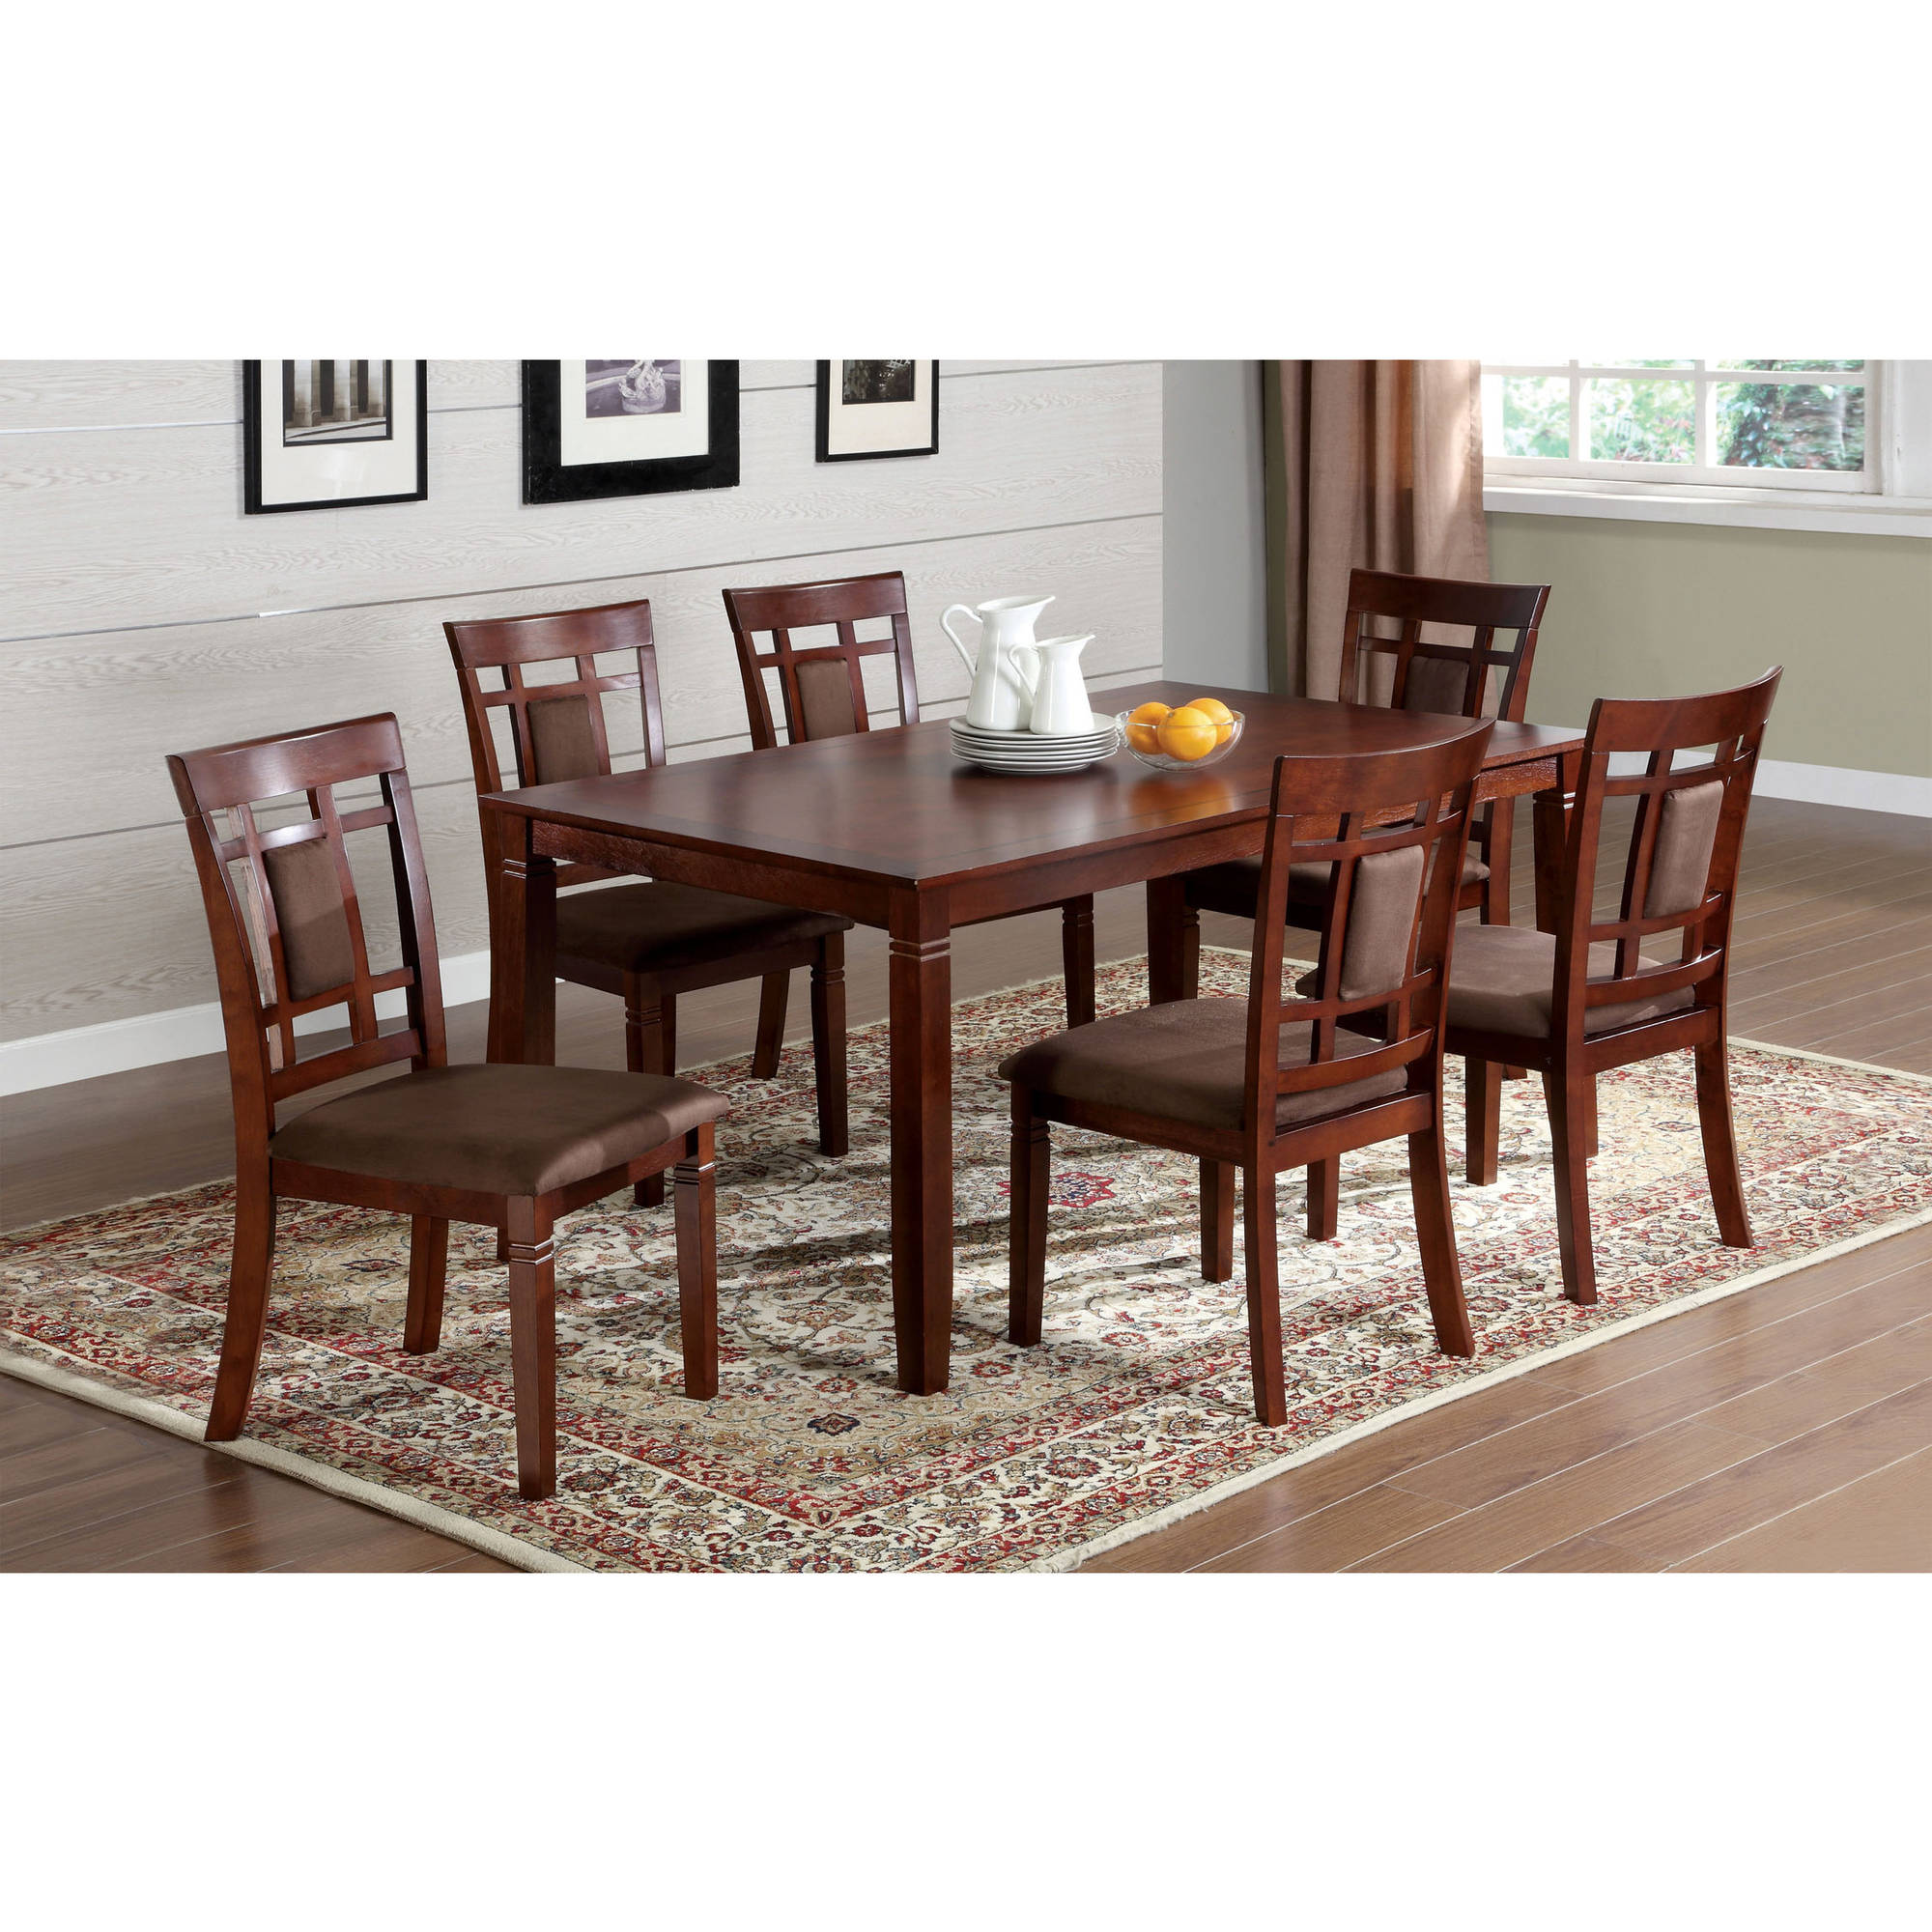 Furniture of America Toya Transitional 7-Piece Dining Set, Dark Cherry